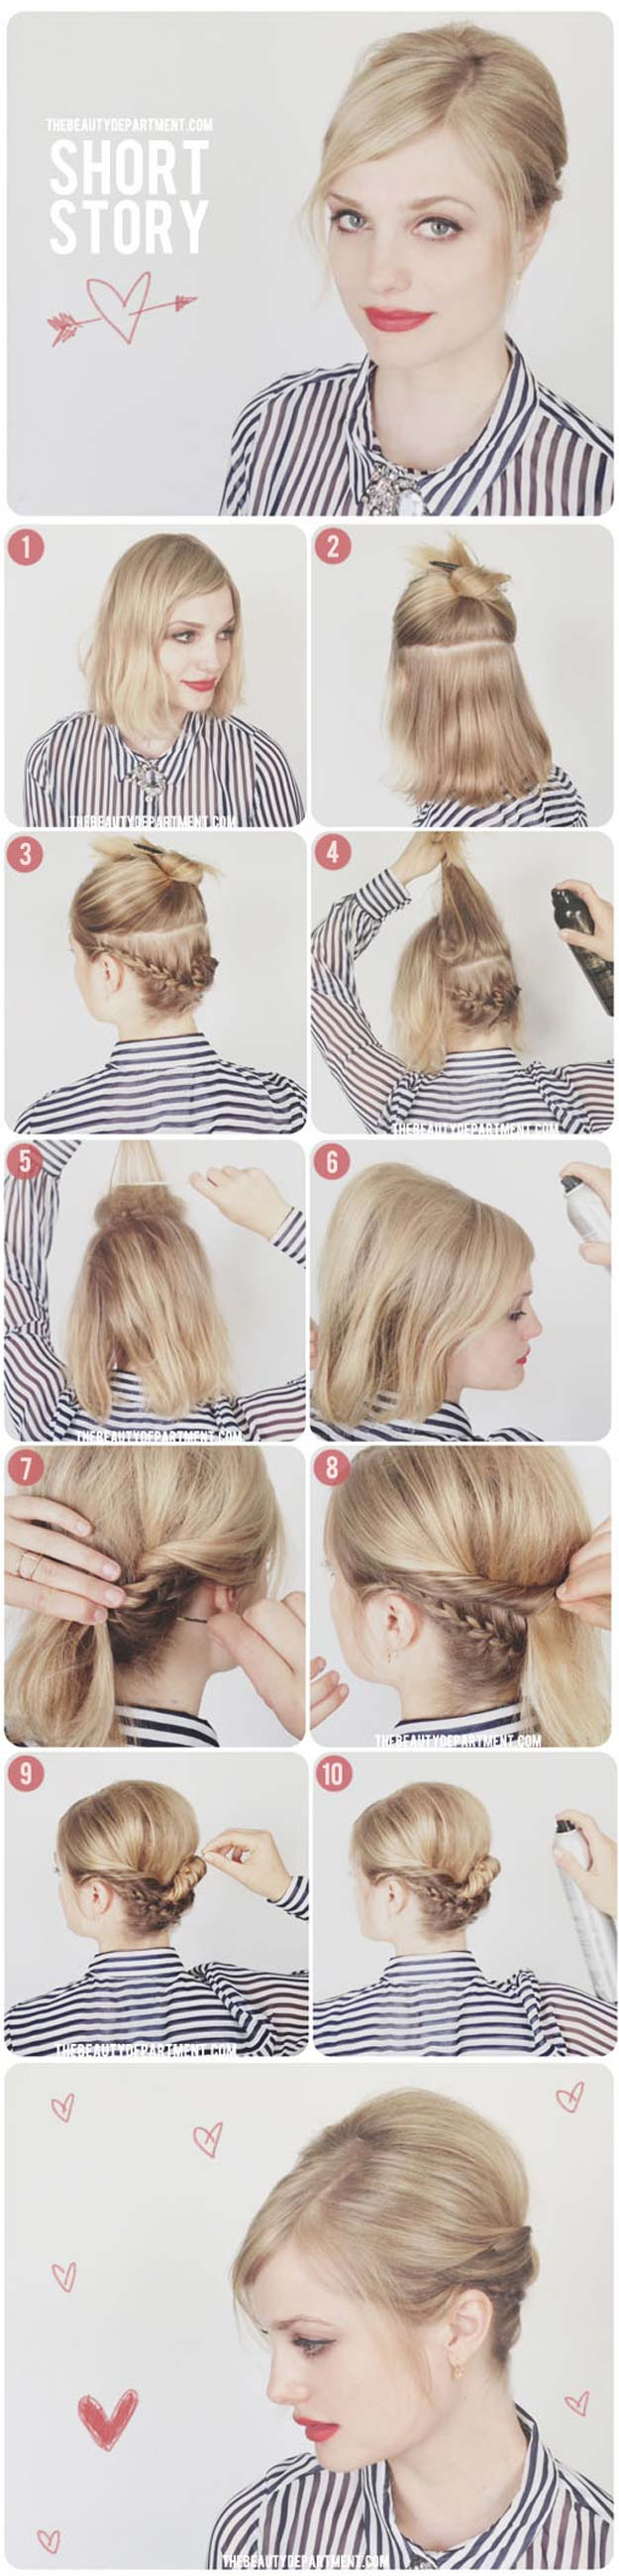 Creative DIY Hair Tutorials - The Under Braider - Color, Rainbow, Galaxy and Unique Styles for Long, Short and Medium Hair - Braids, Dyes, Instructions for Teens and Women http://diyprojectsforteens.com/creative-hair-tutorials